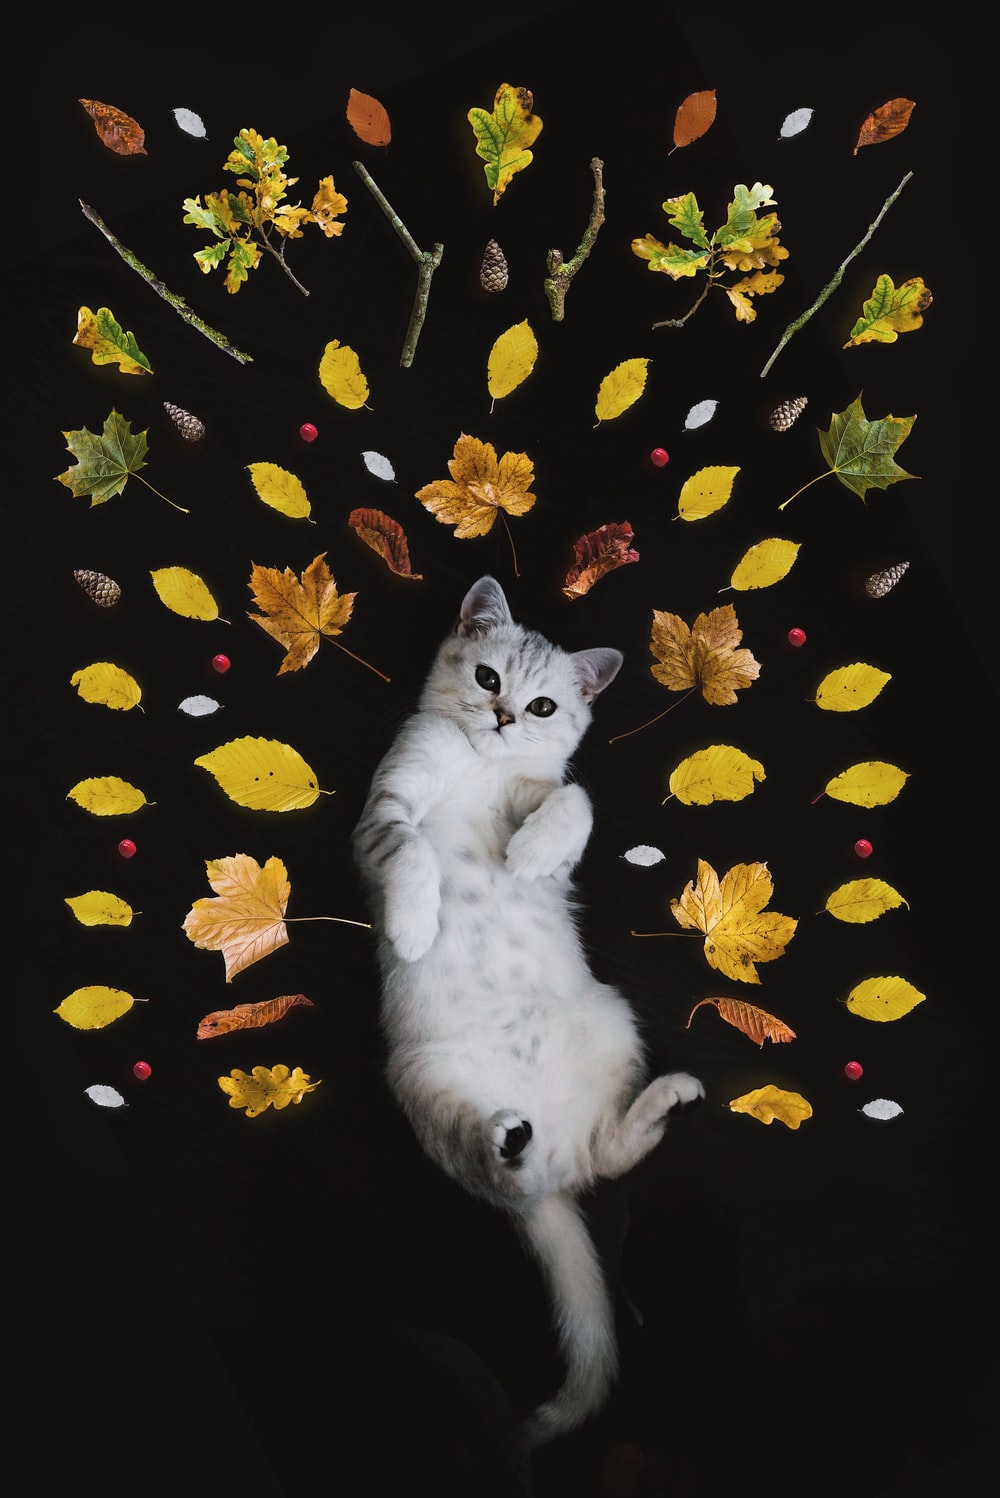 silver tabby cat surrounded by leaves